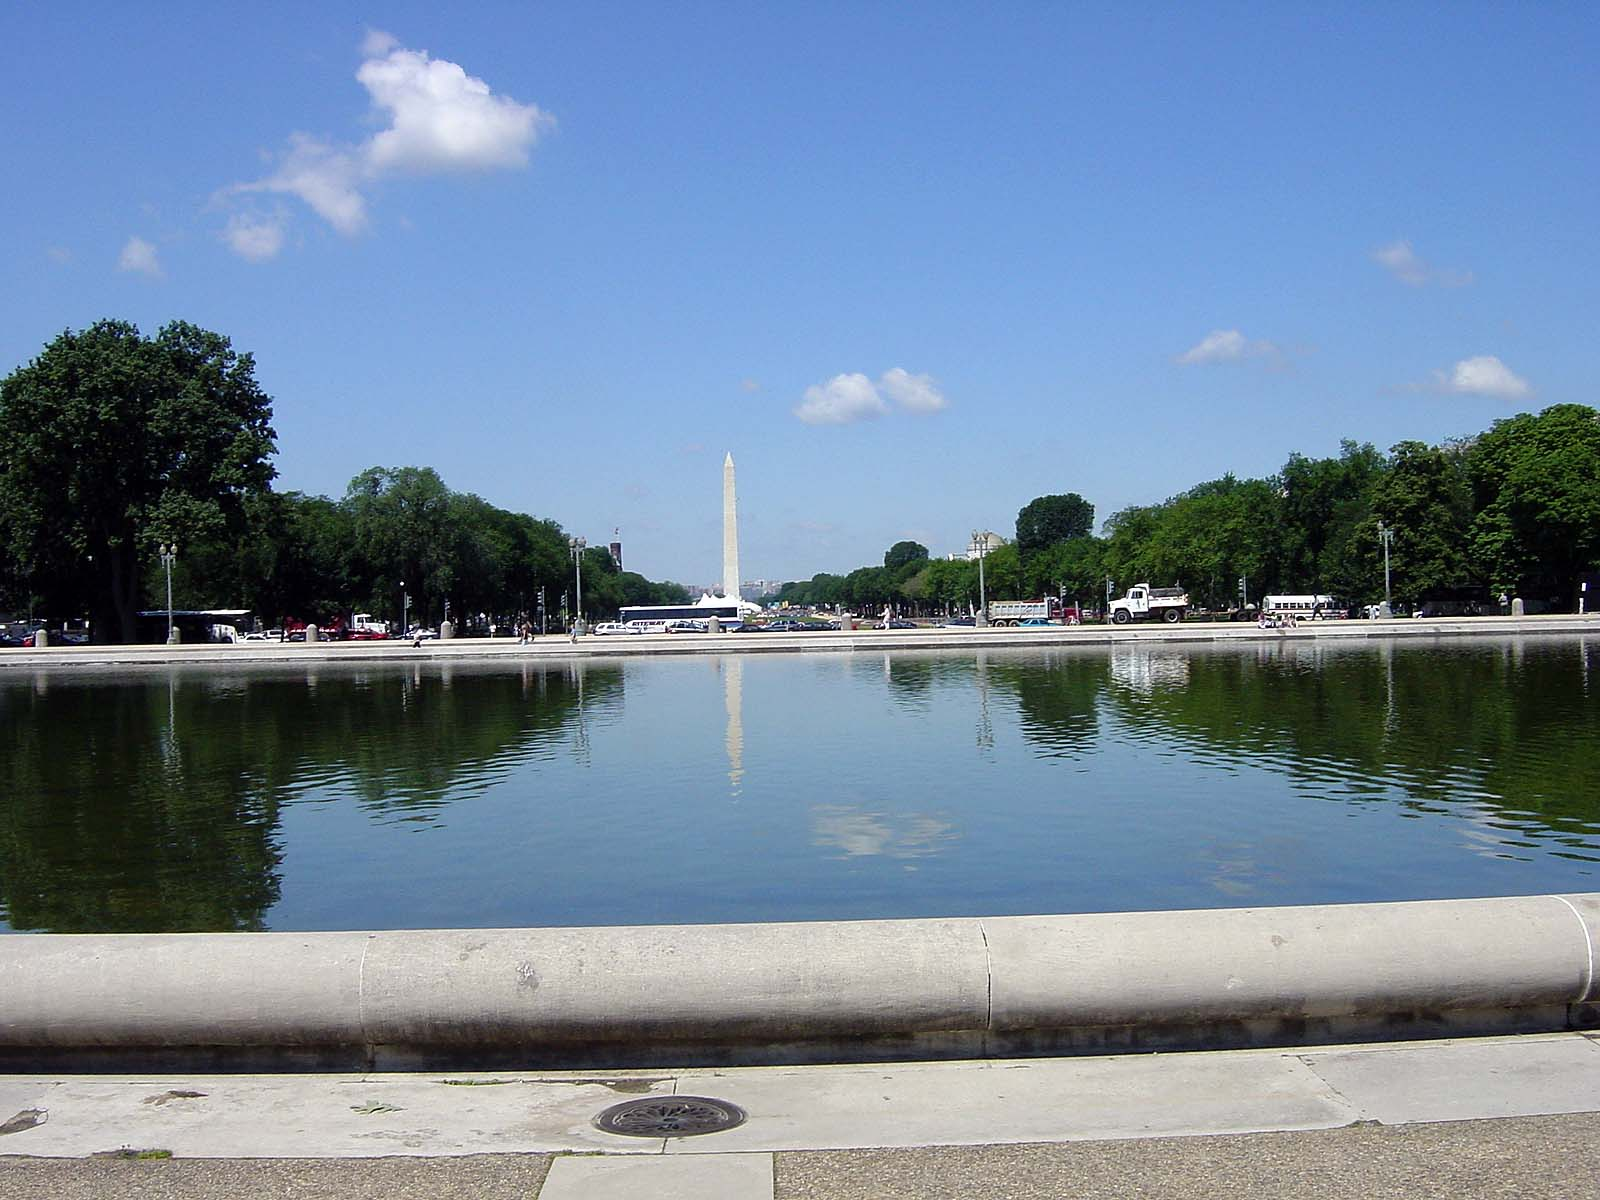 Capitol Reflecting Pool/National Mall/Washington Monument